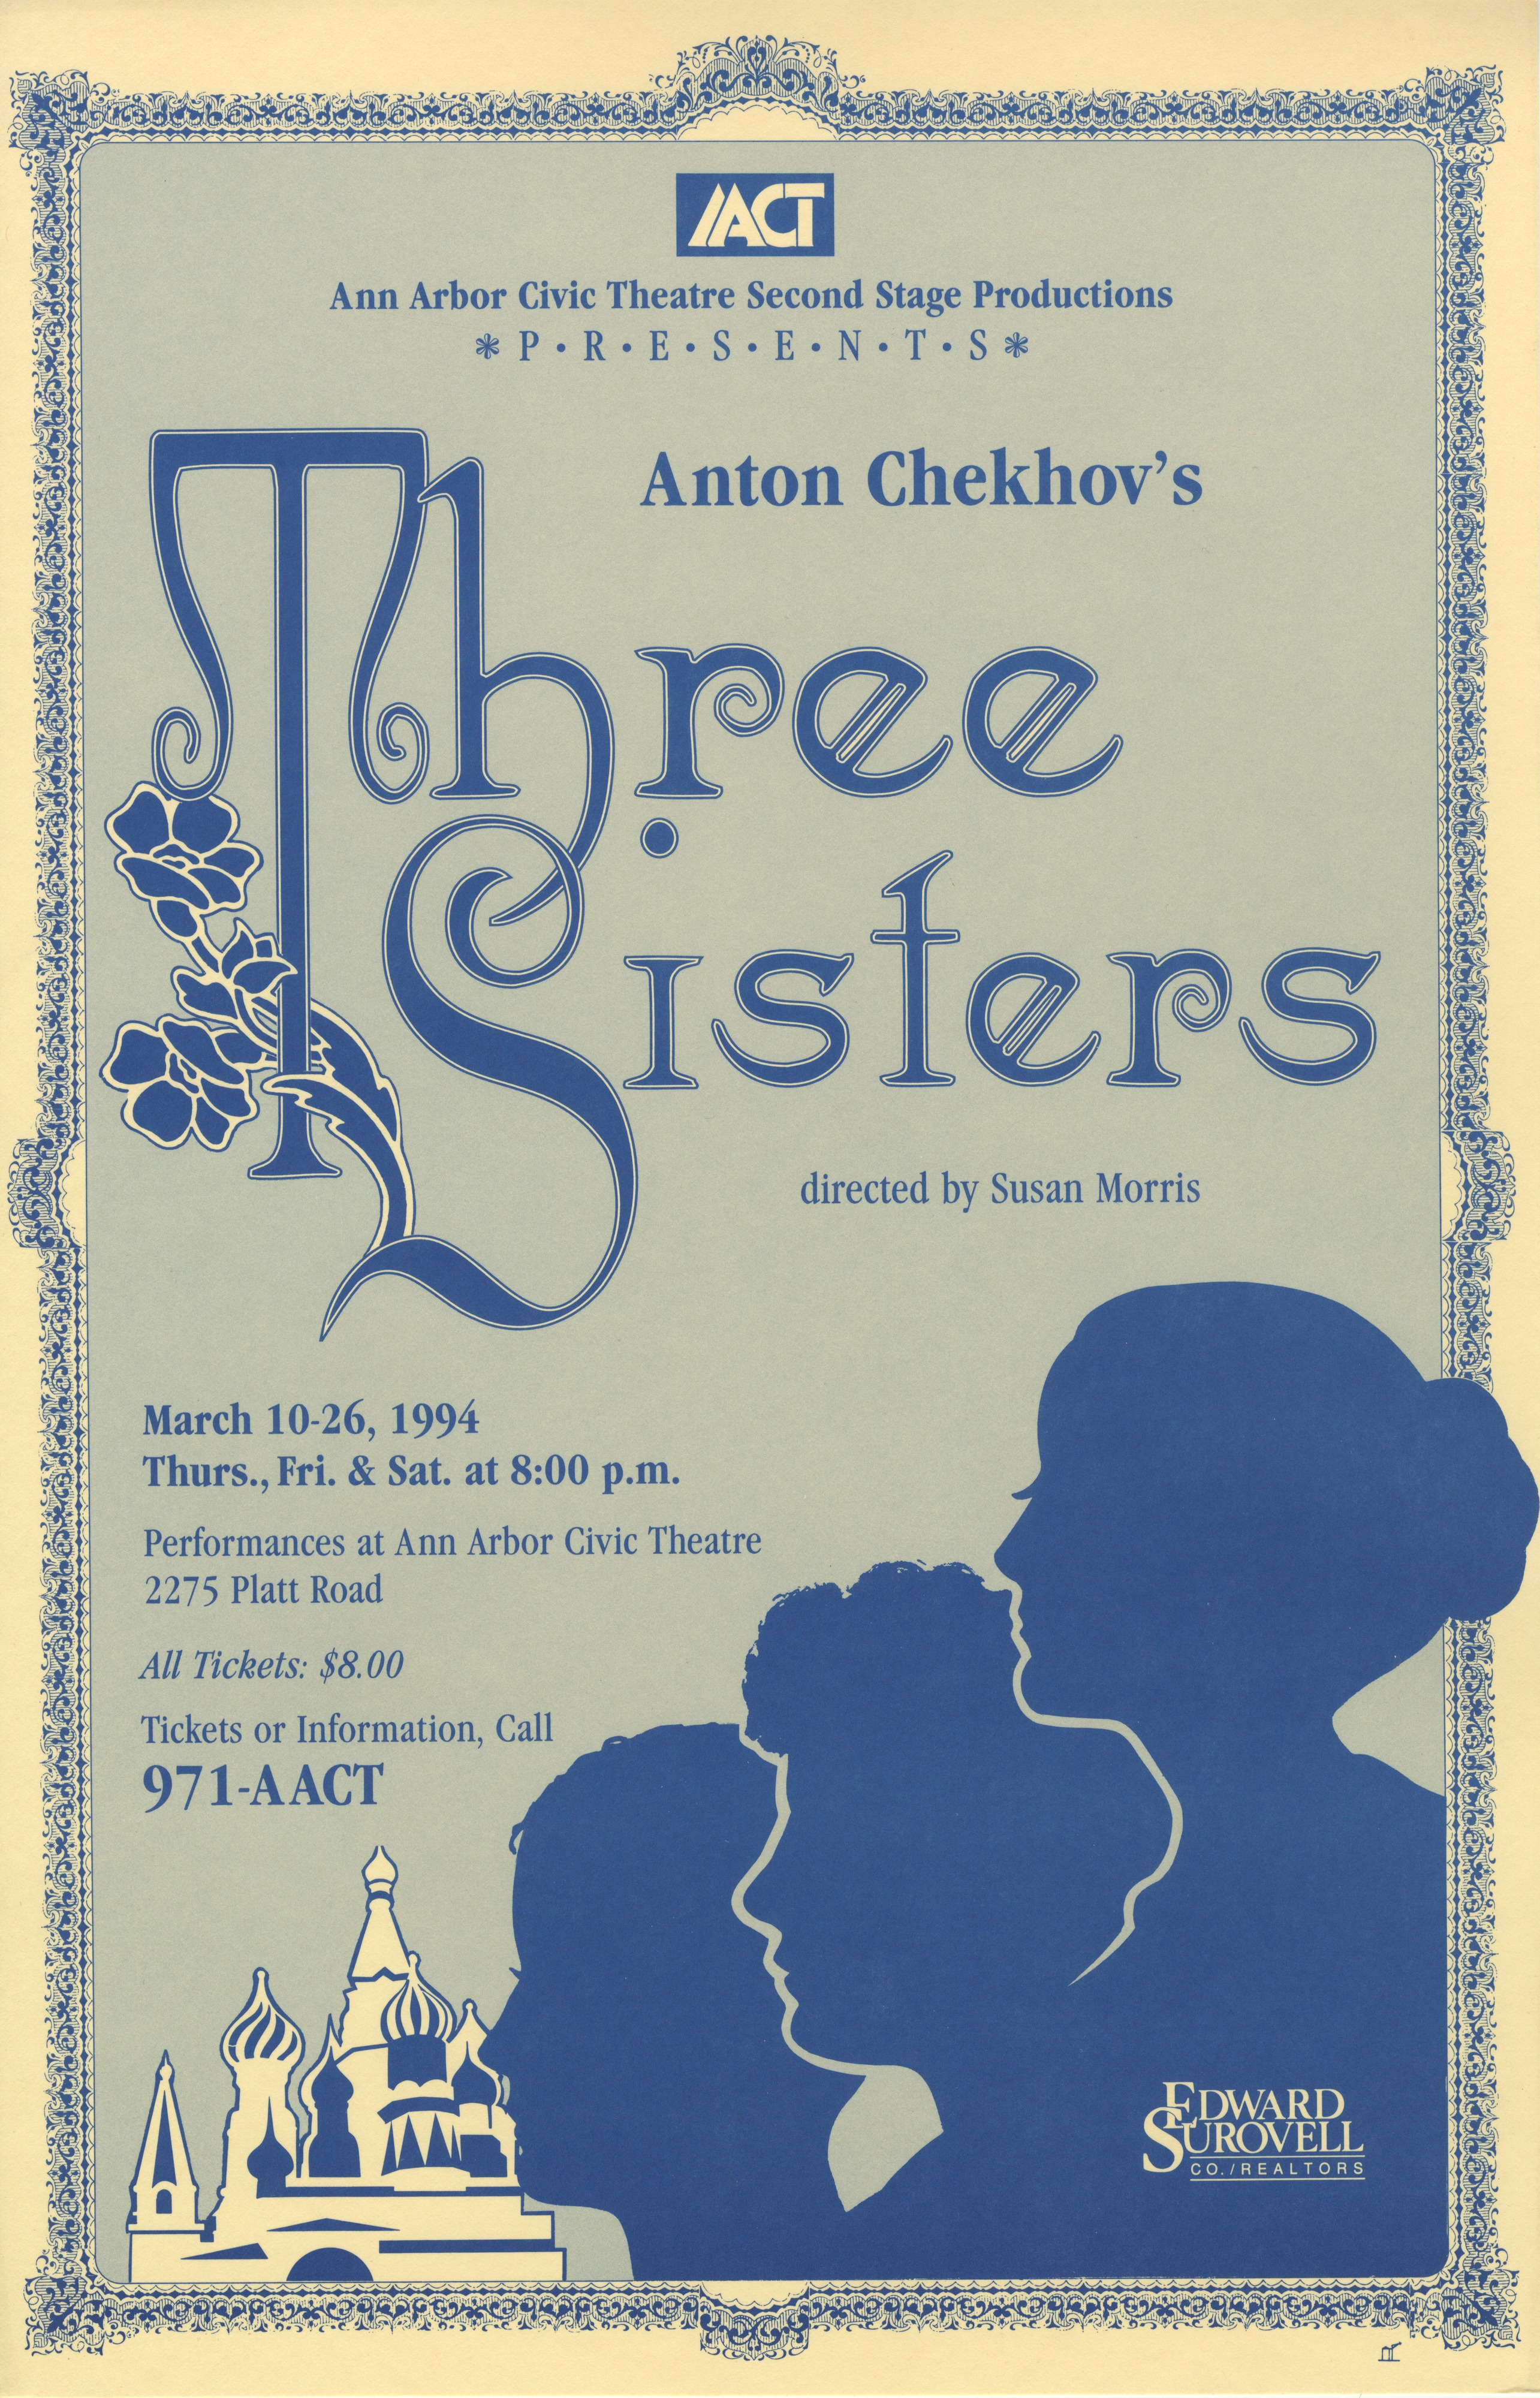 Ann Arbor Civic Theatre Poster: Three Sisters image